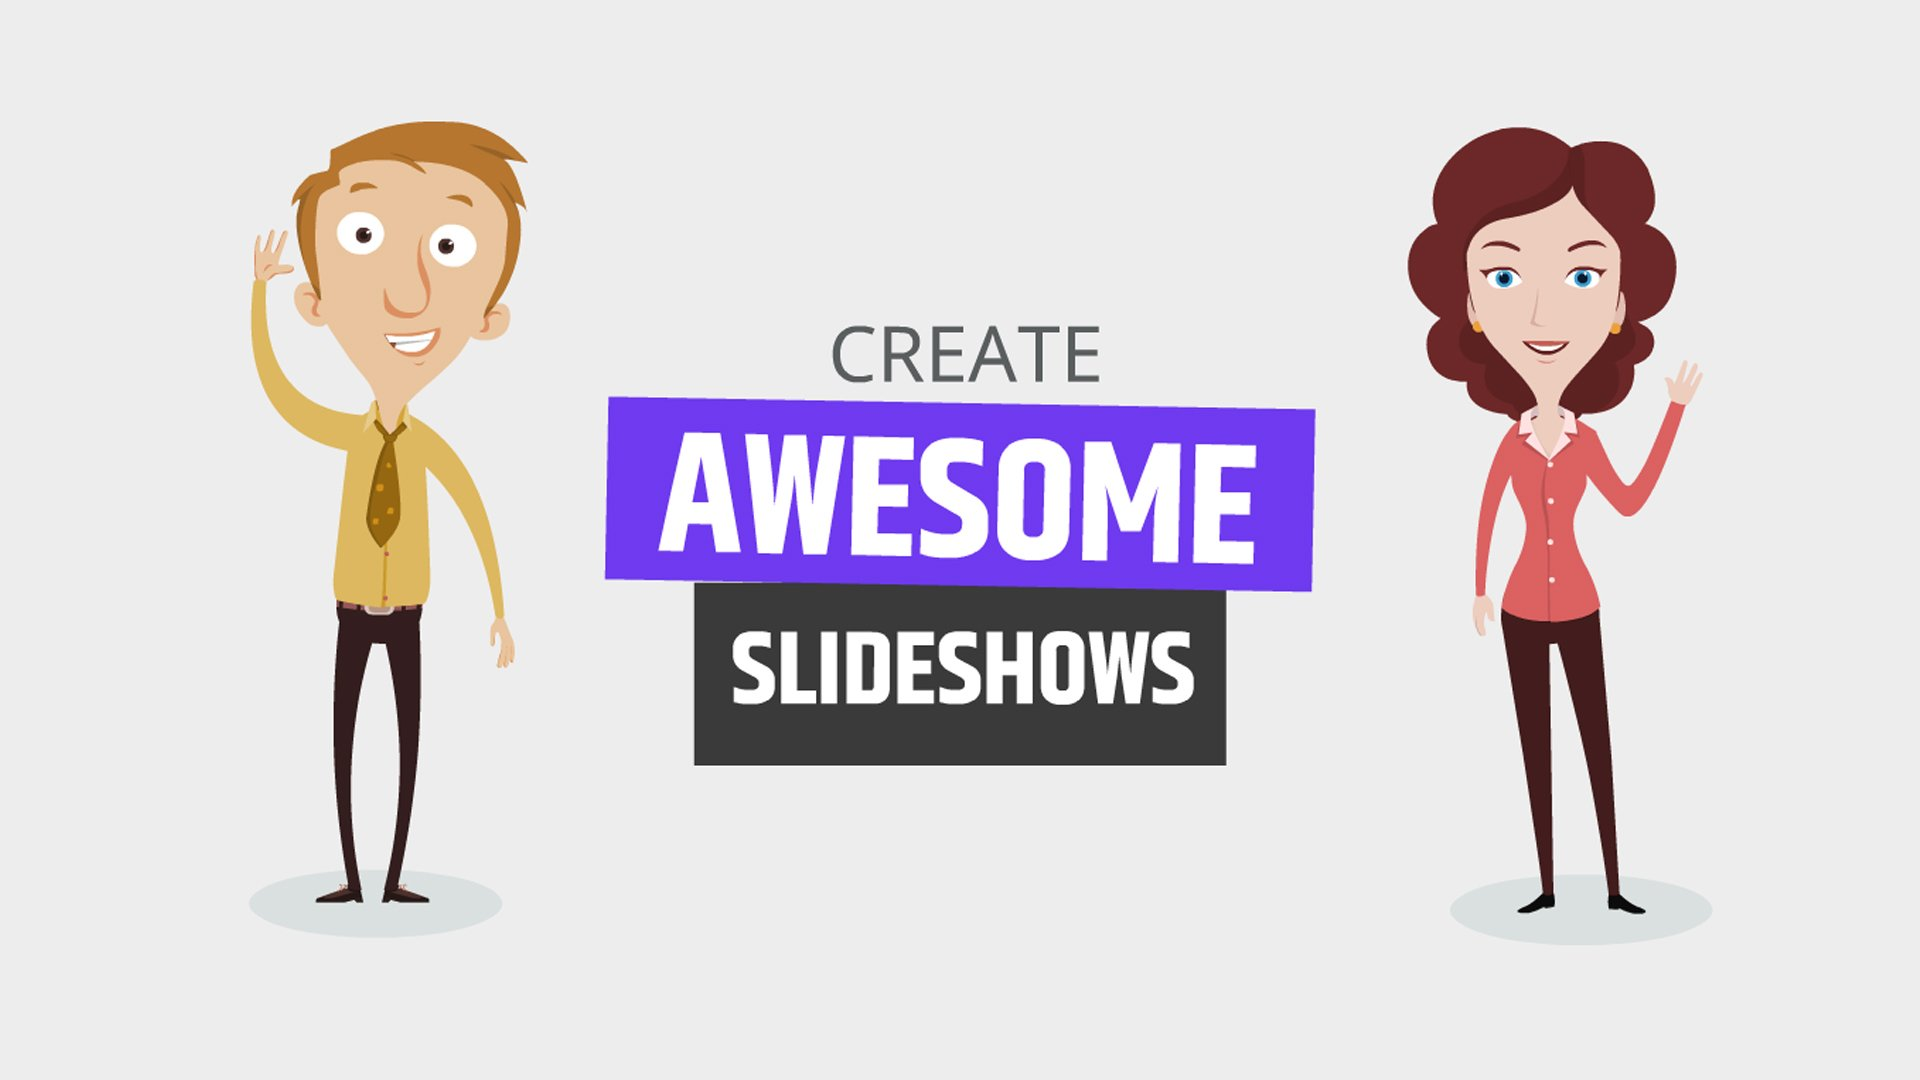 Make Slideshow from your photos with best qualities